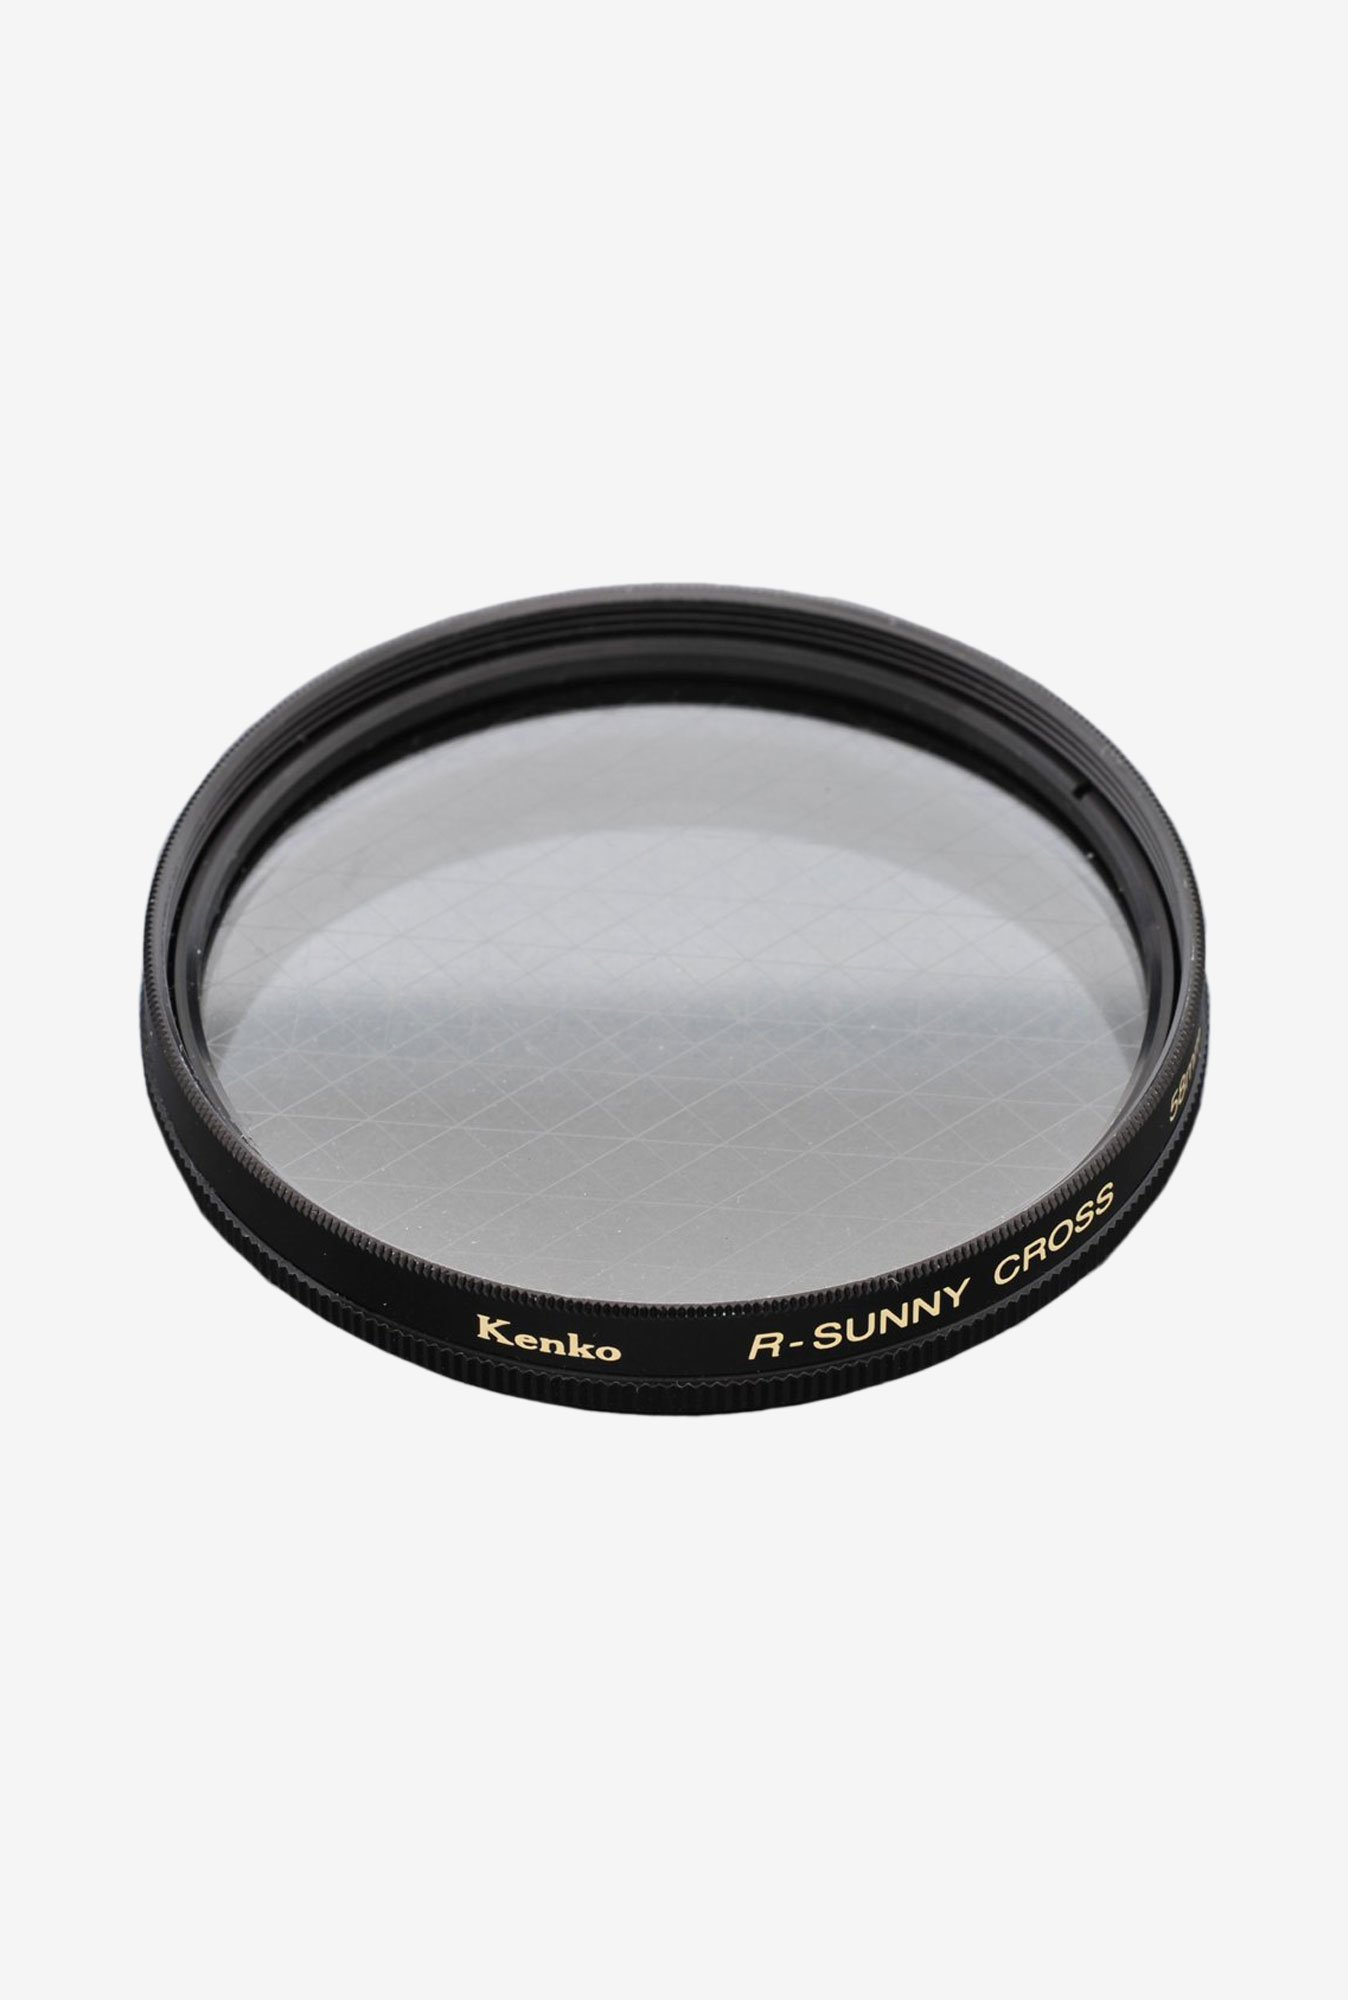 Kenko 52mm R-Sunny Screen Camera Lens Filter (Black)